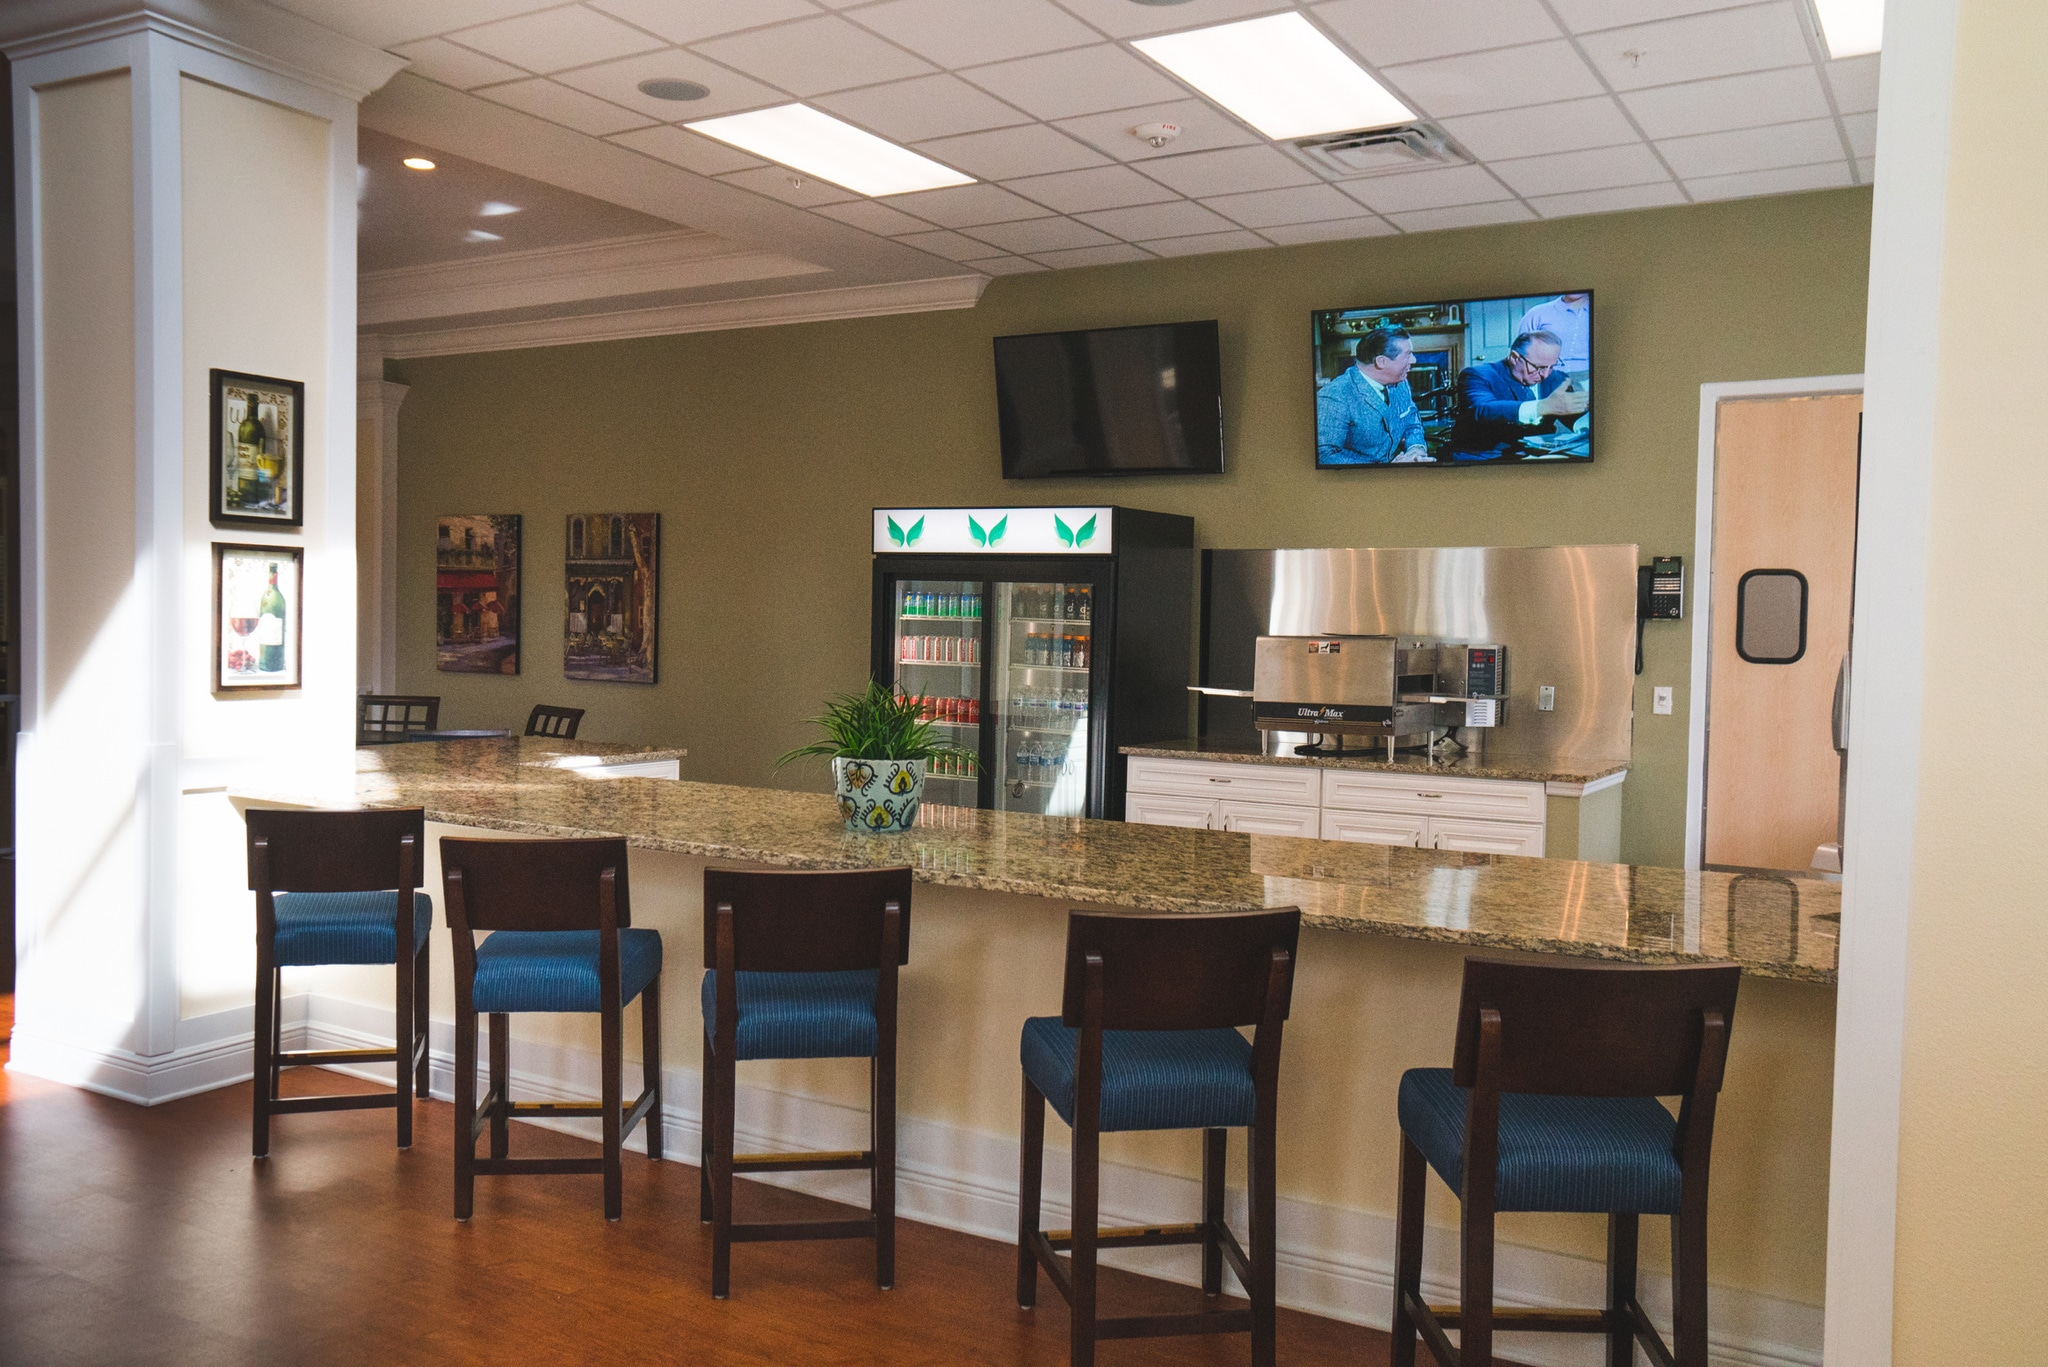 Our bistro offers the residents refreshments and entertainment in a dining environment that gives them a change of pace.